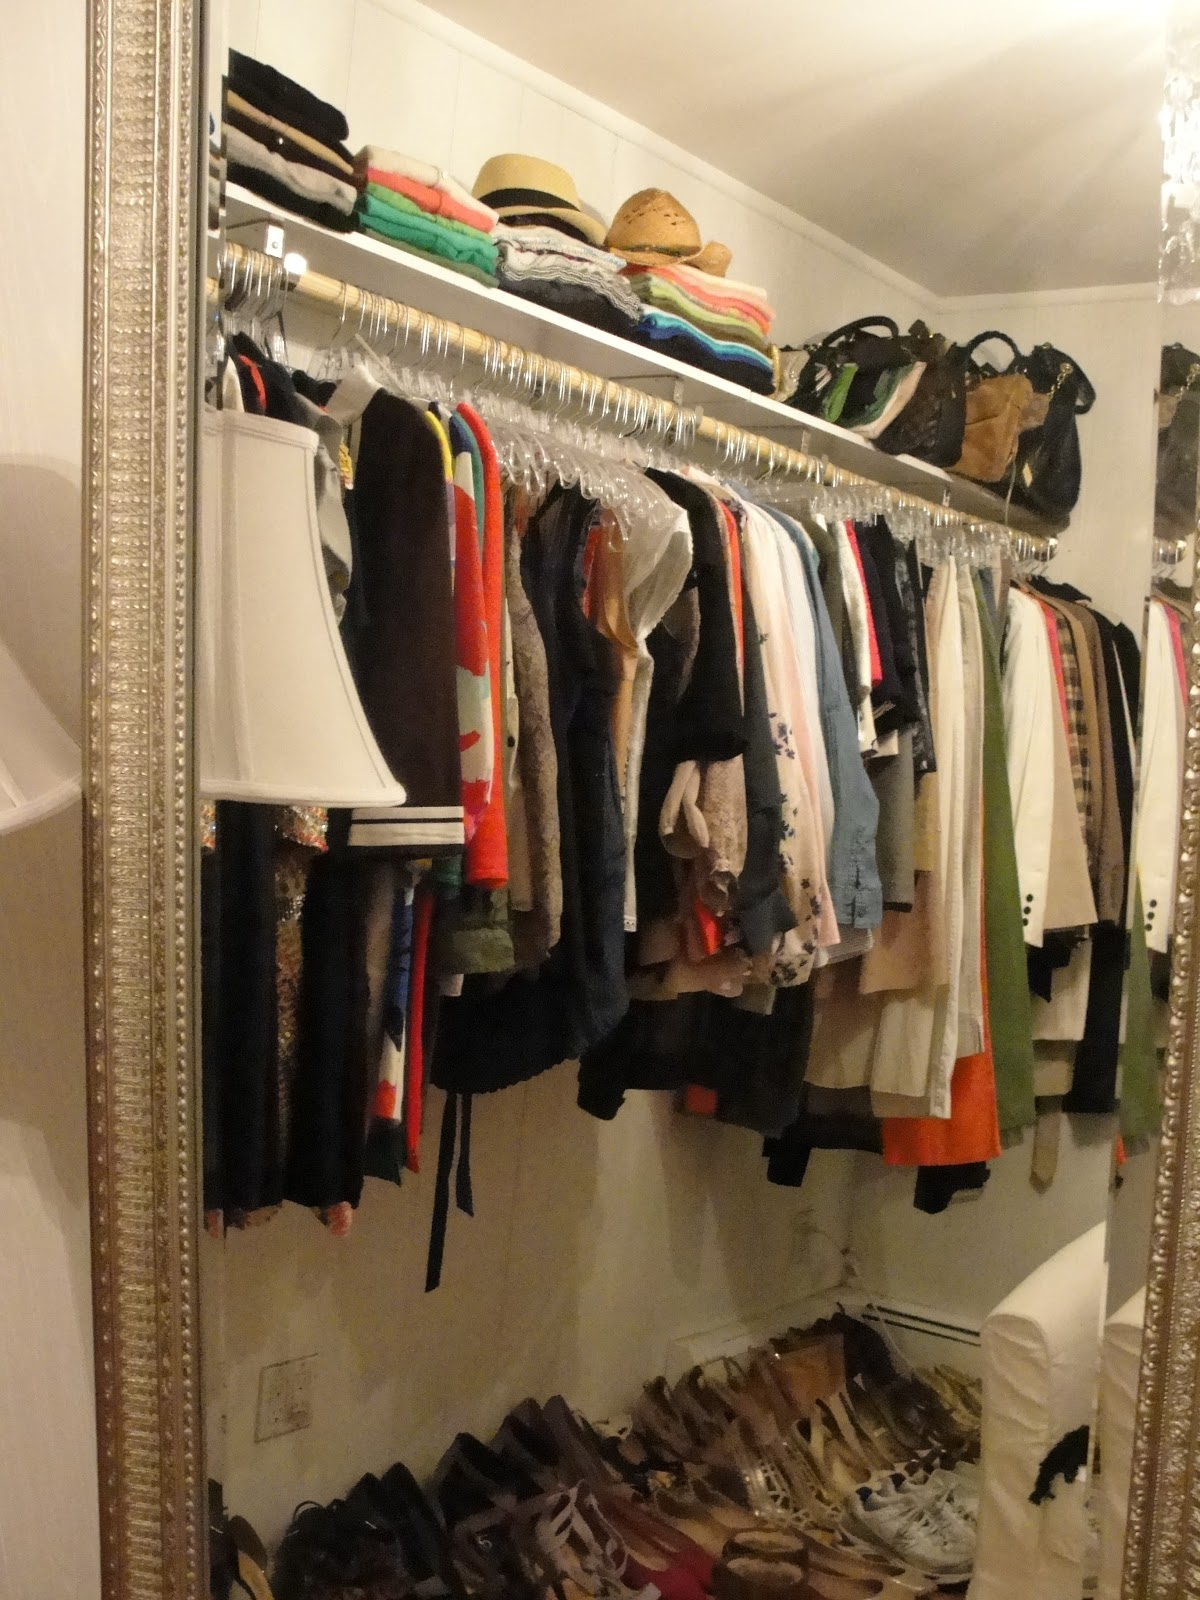 """consultant the closet essay The closet a door slammed, startling laura """"shit"""" she grinned sheepishly, feeling chagrined at being alarmed in her family's house hell, i grew up here."""